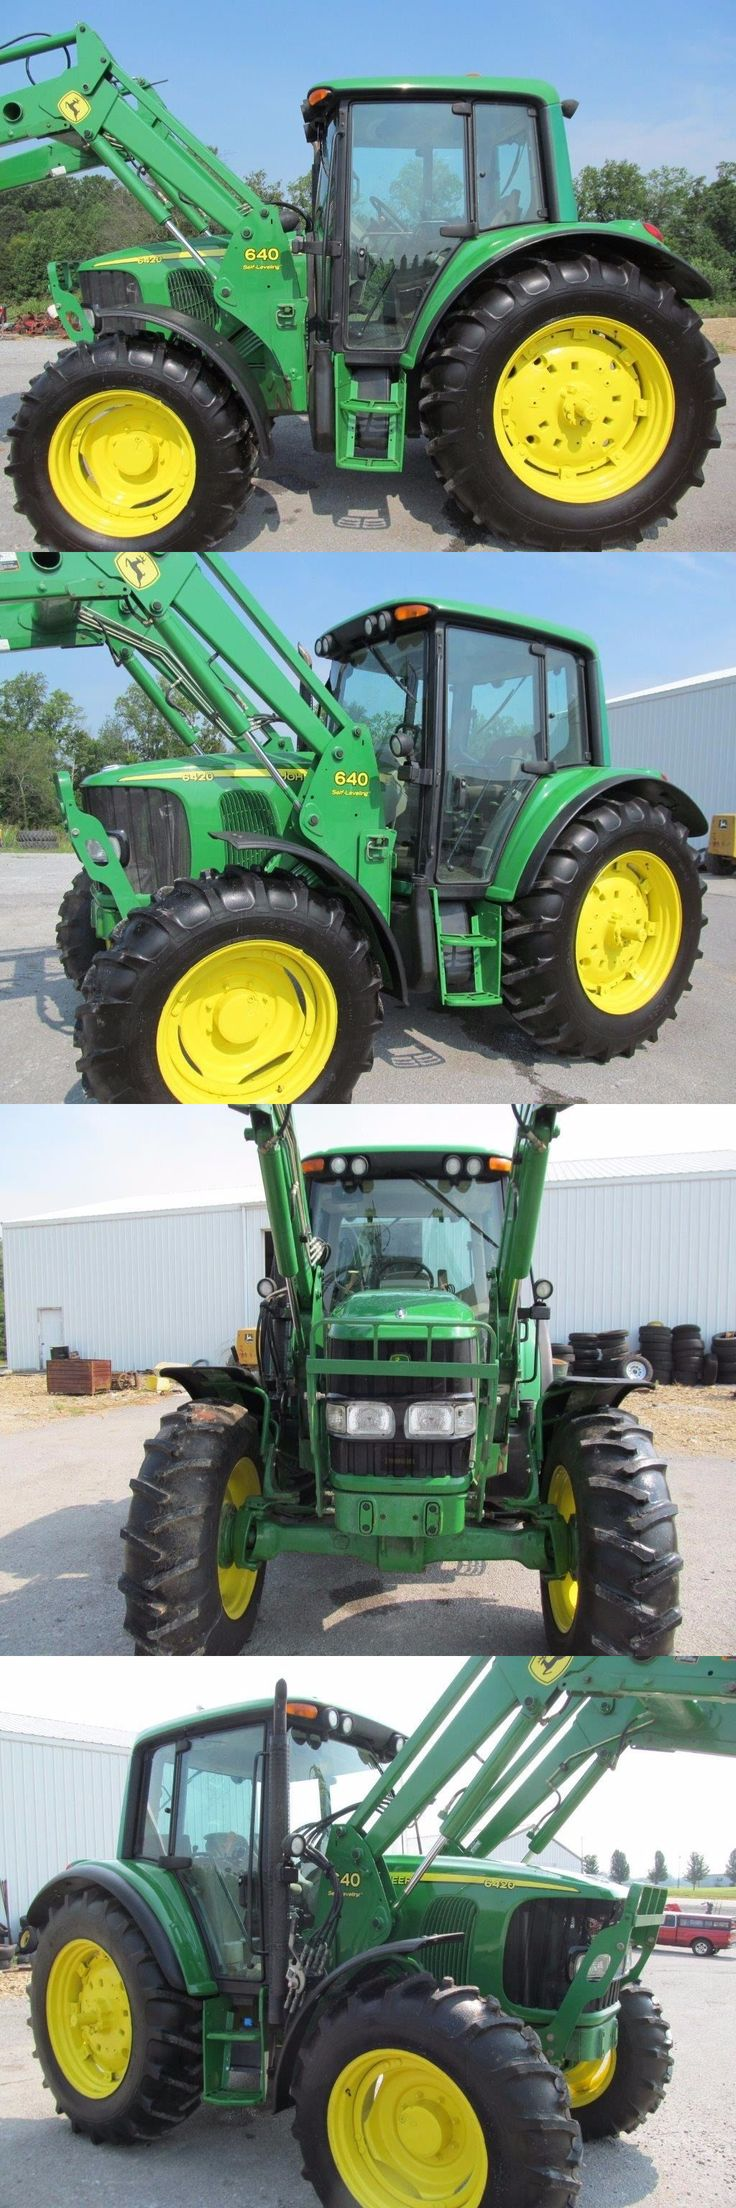 John Deere 6420 Diesel Tractor 4 X 4 With Cab &... - Exclusively on #priceabate #priceabateHeavyEquipments! BUY IT NOW ONLY $50299